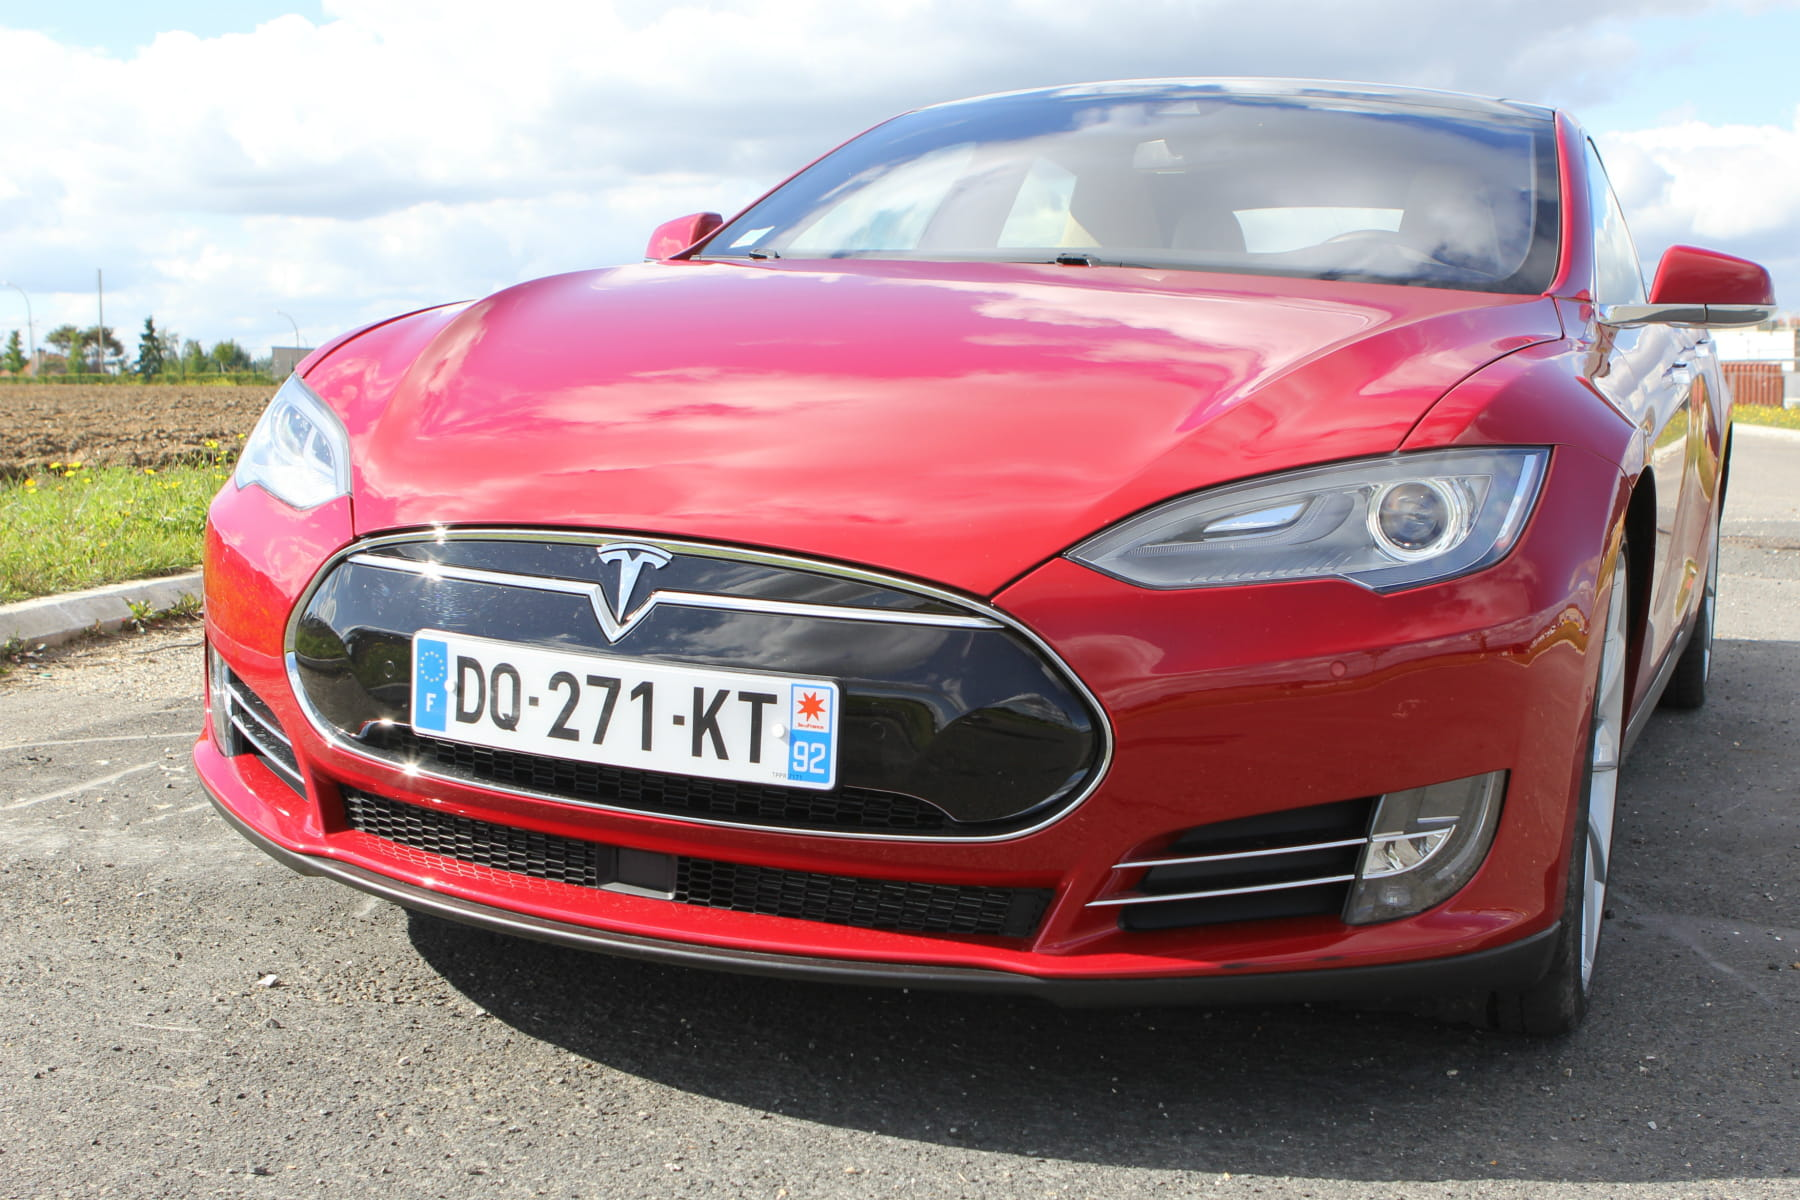 essai tesla model s au volant de la foudroyante berline high tech linternaute. Black Bedroom Furniture Sets. Home Design Ideas